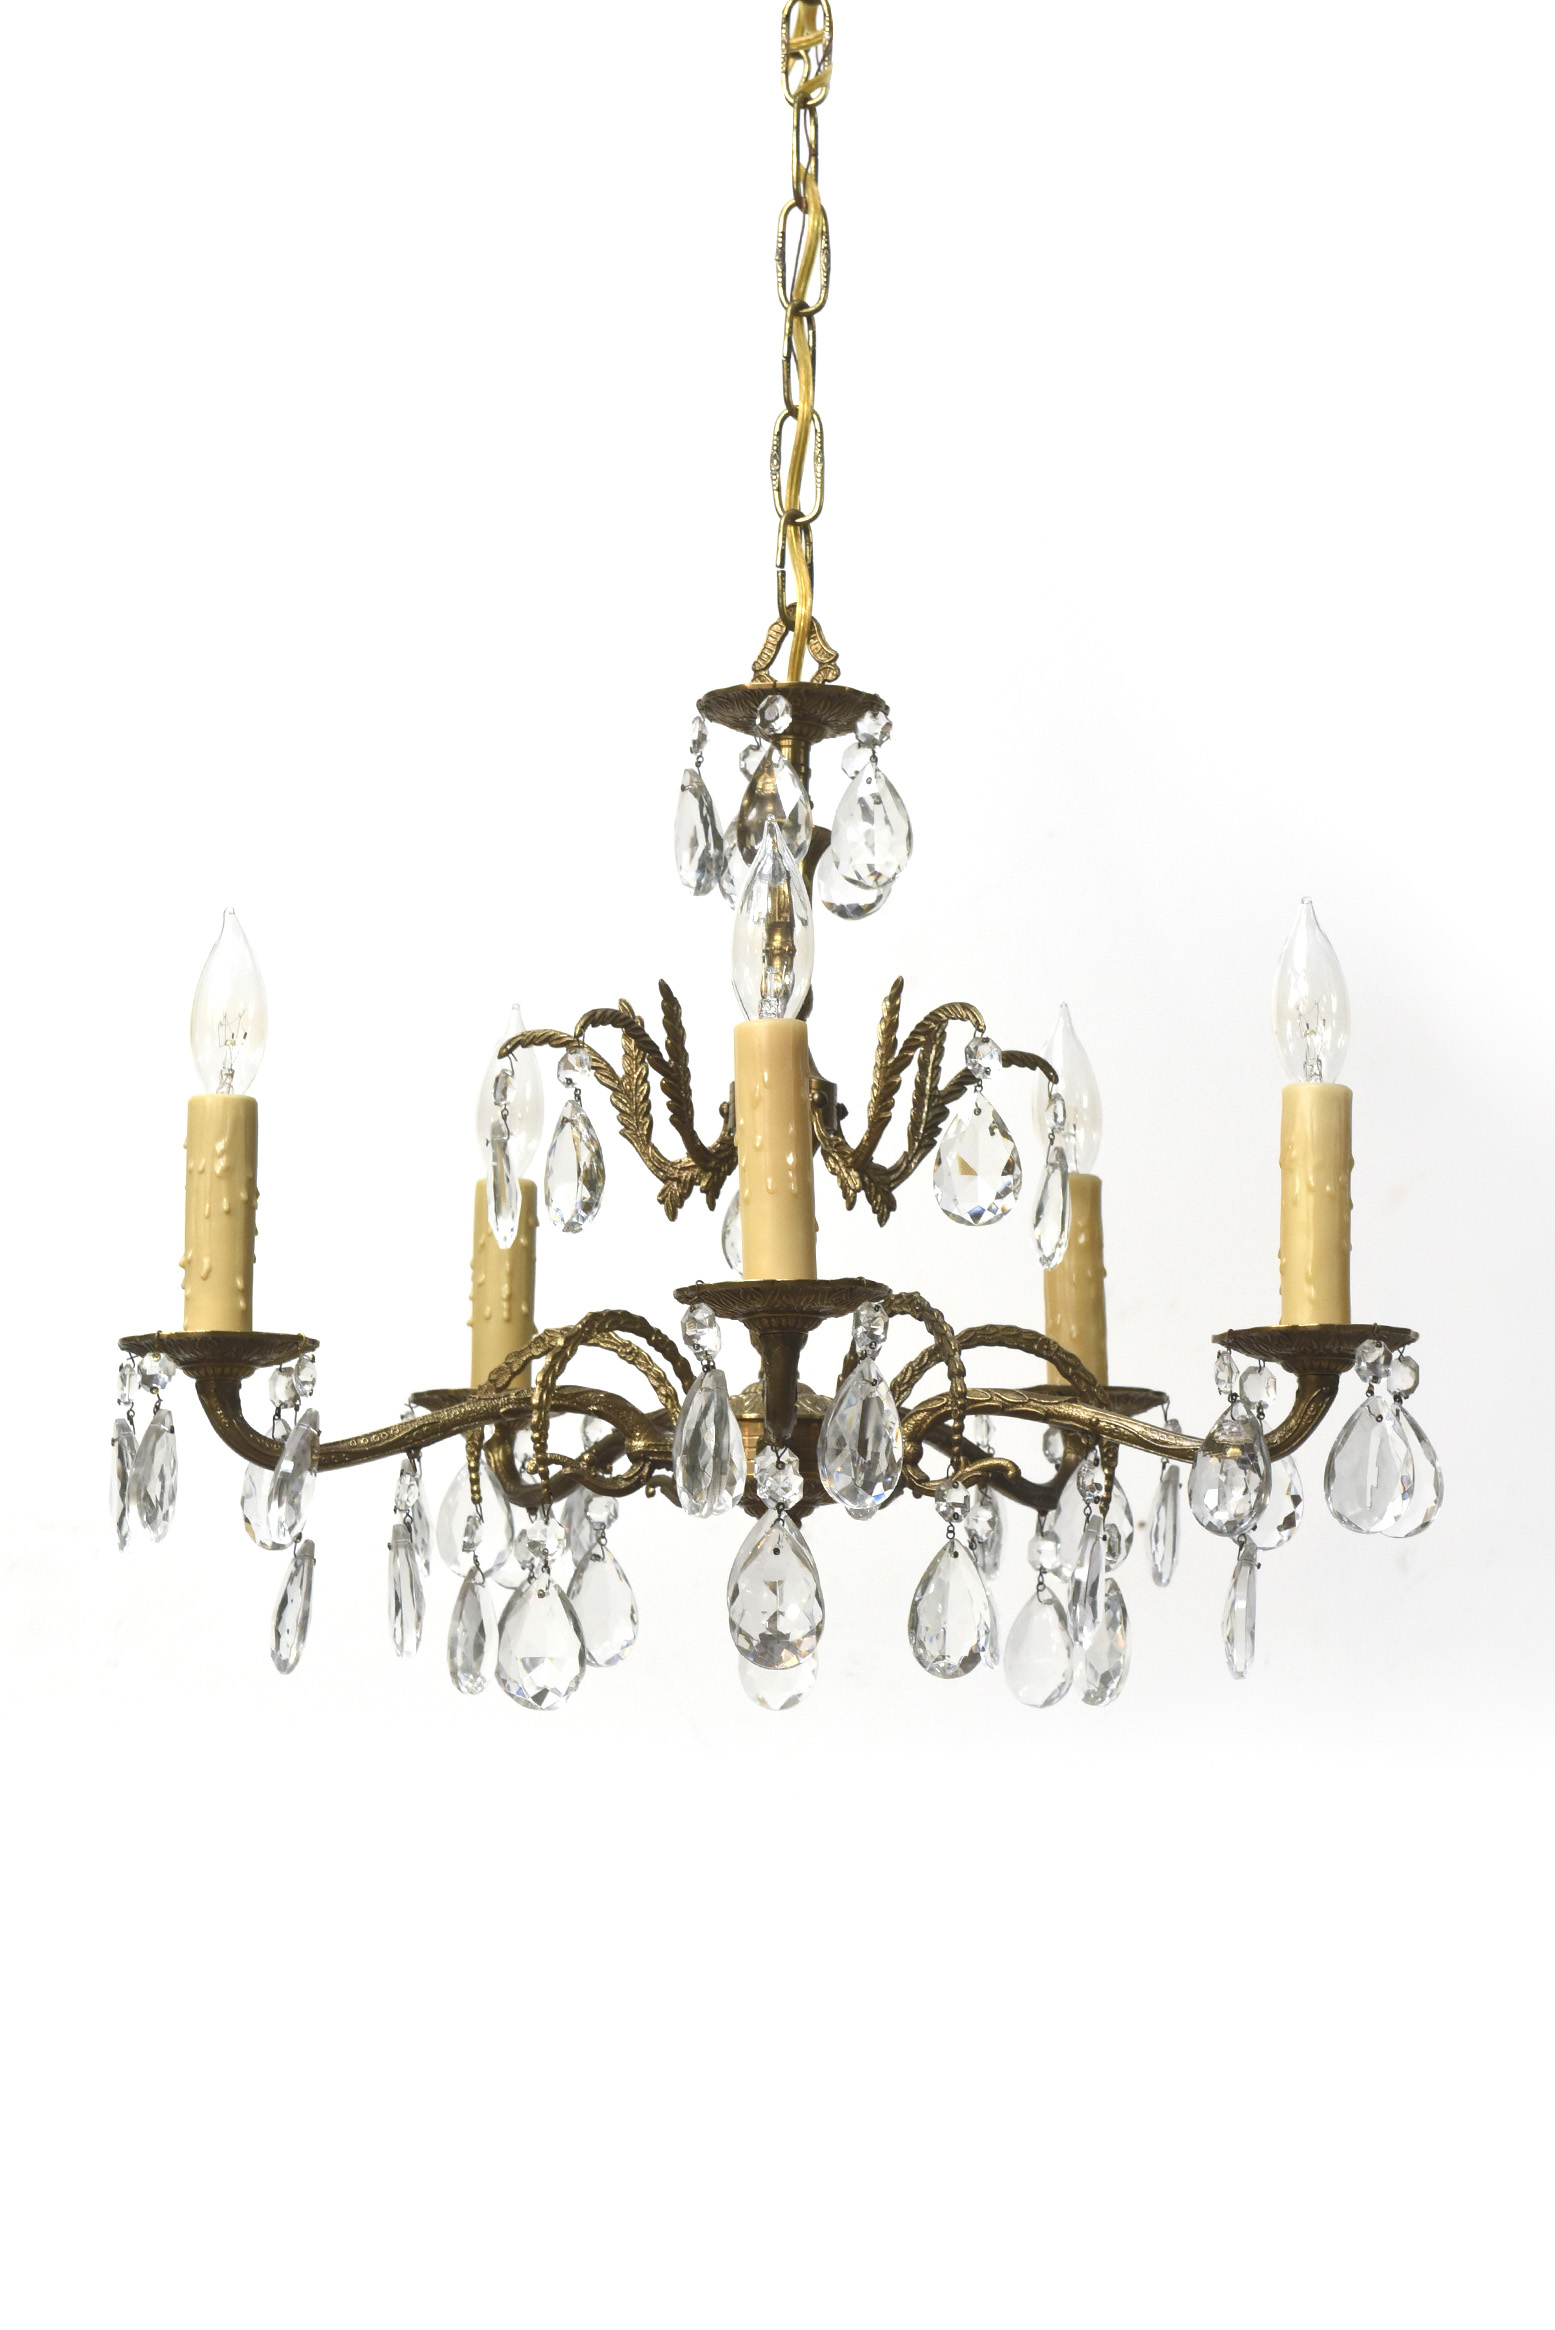 Spanish Chandelier Five Light Spanish Brass And Crystal Chandelier